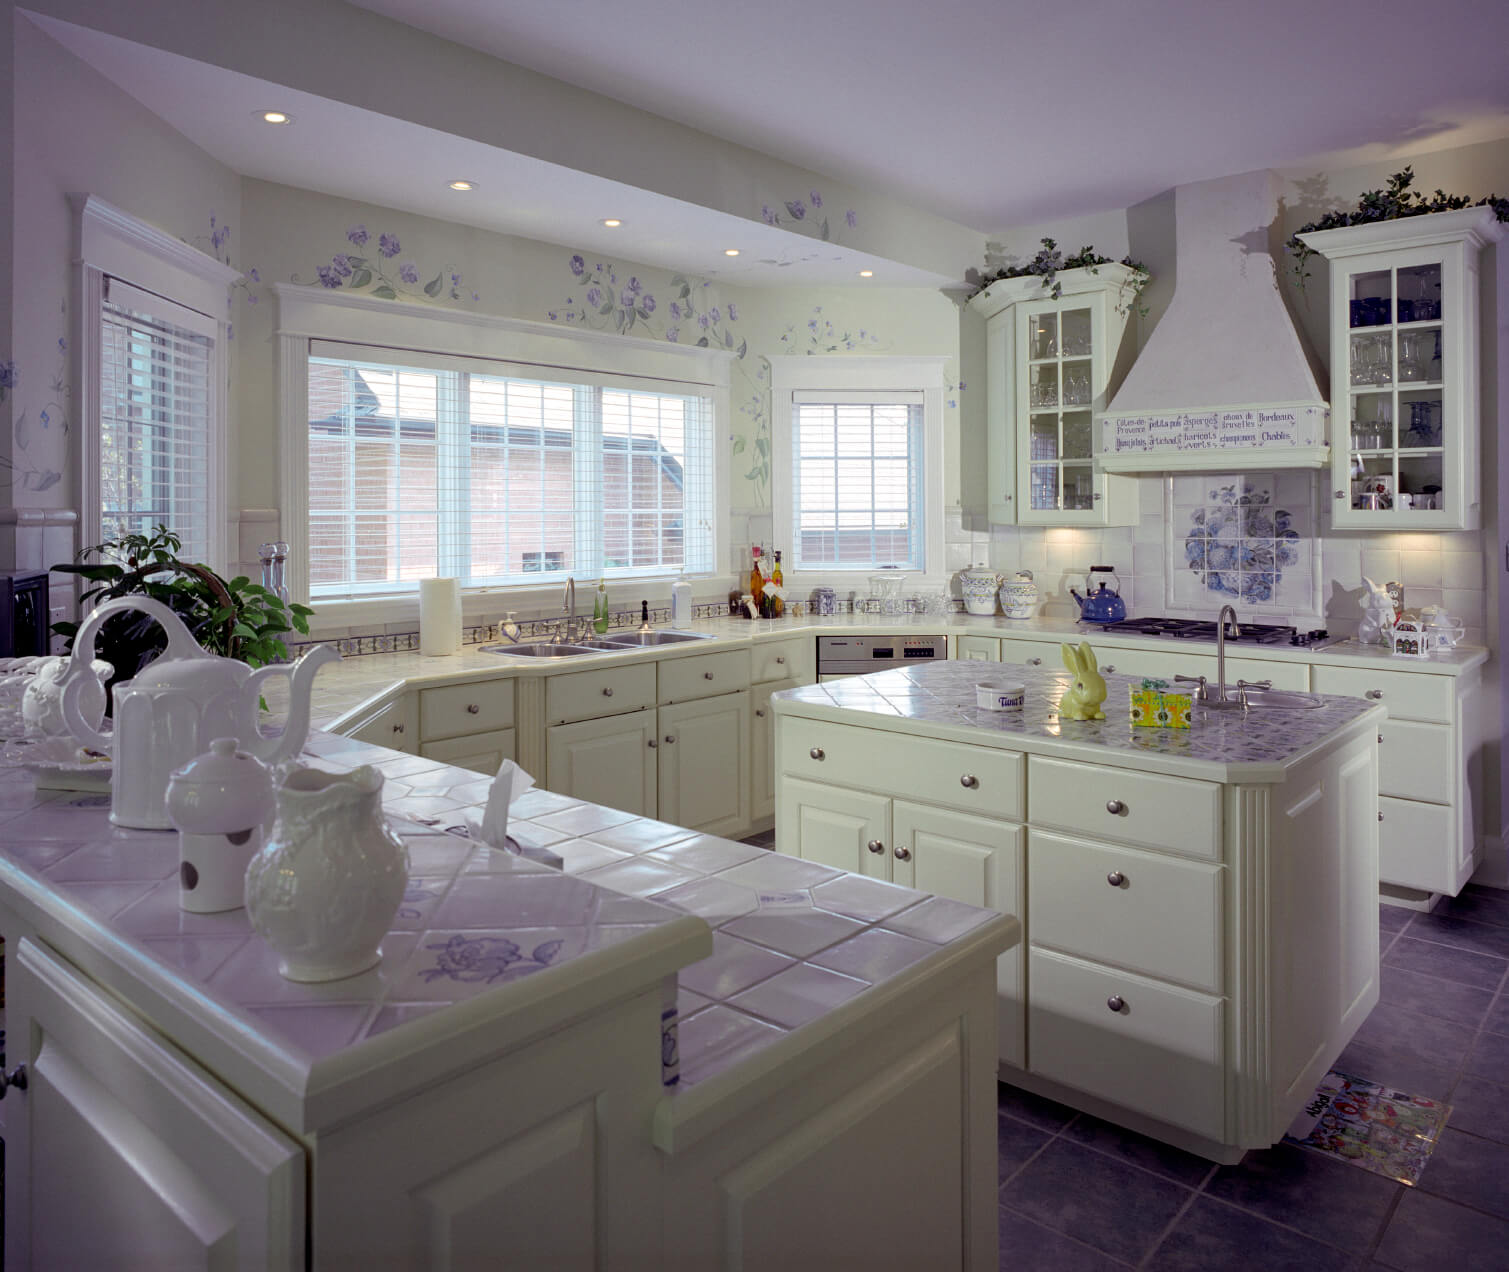 Compare Prices On Purple Kitchen Decor Online Shopping: 41 White Kitchen Interior Design & Decor Ideas (PICTURES